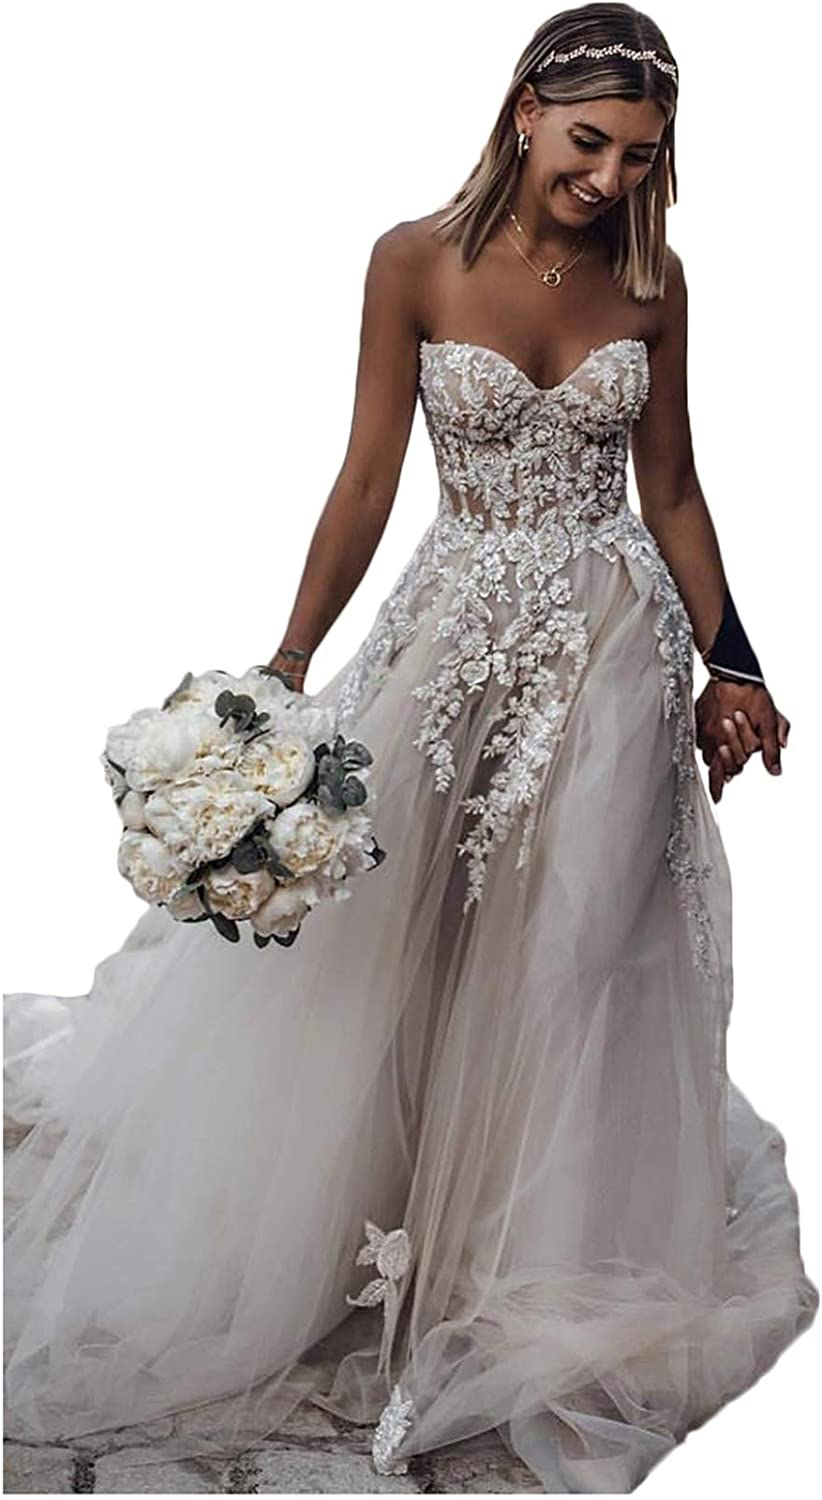 Annxpink Women's ALine Sweetheart Neck Beading Appliques Tulle Wedding Dress Bridal Gown